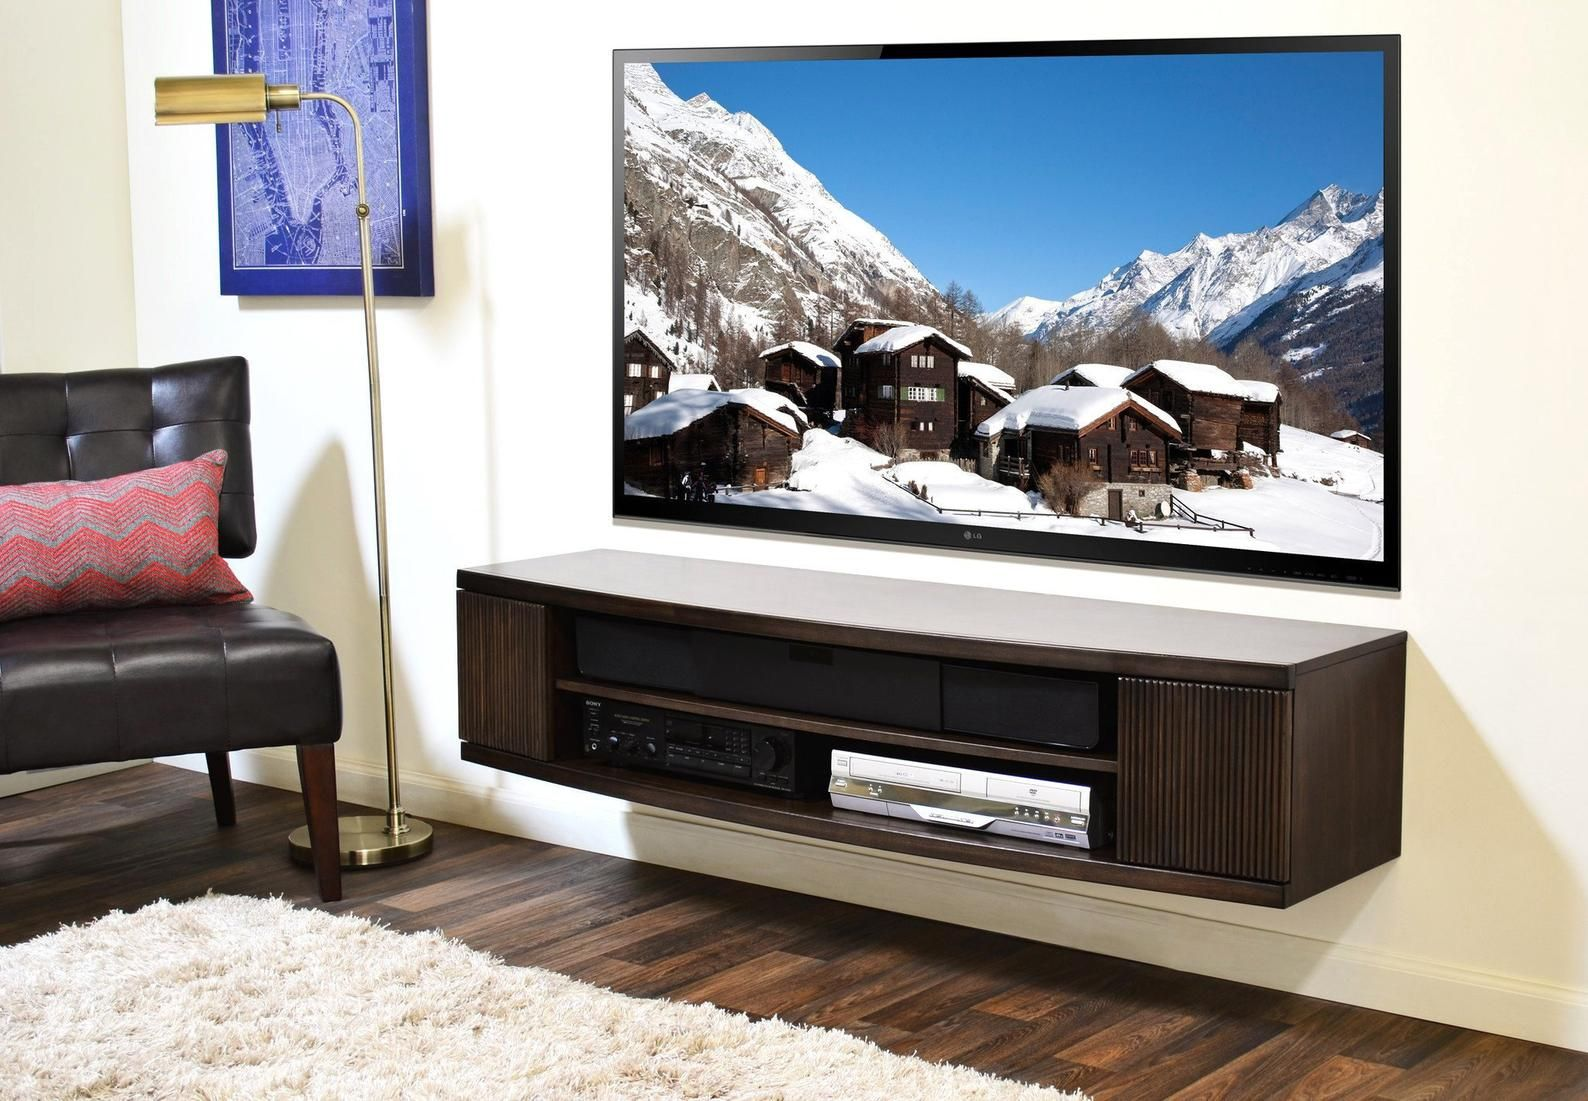 Curved Wall Mount Floating Entertainment Center Tv Stand Arc Etsy Wall Mount Entertainment Center Curved Walls Floating Entertainment Center